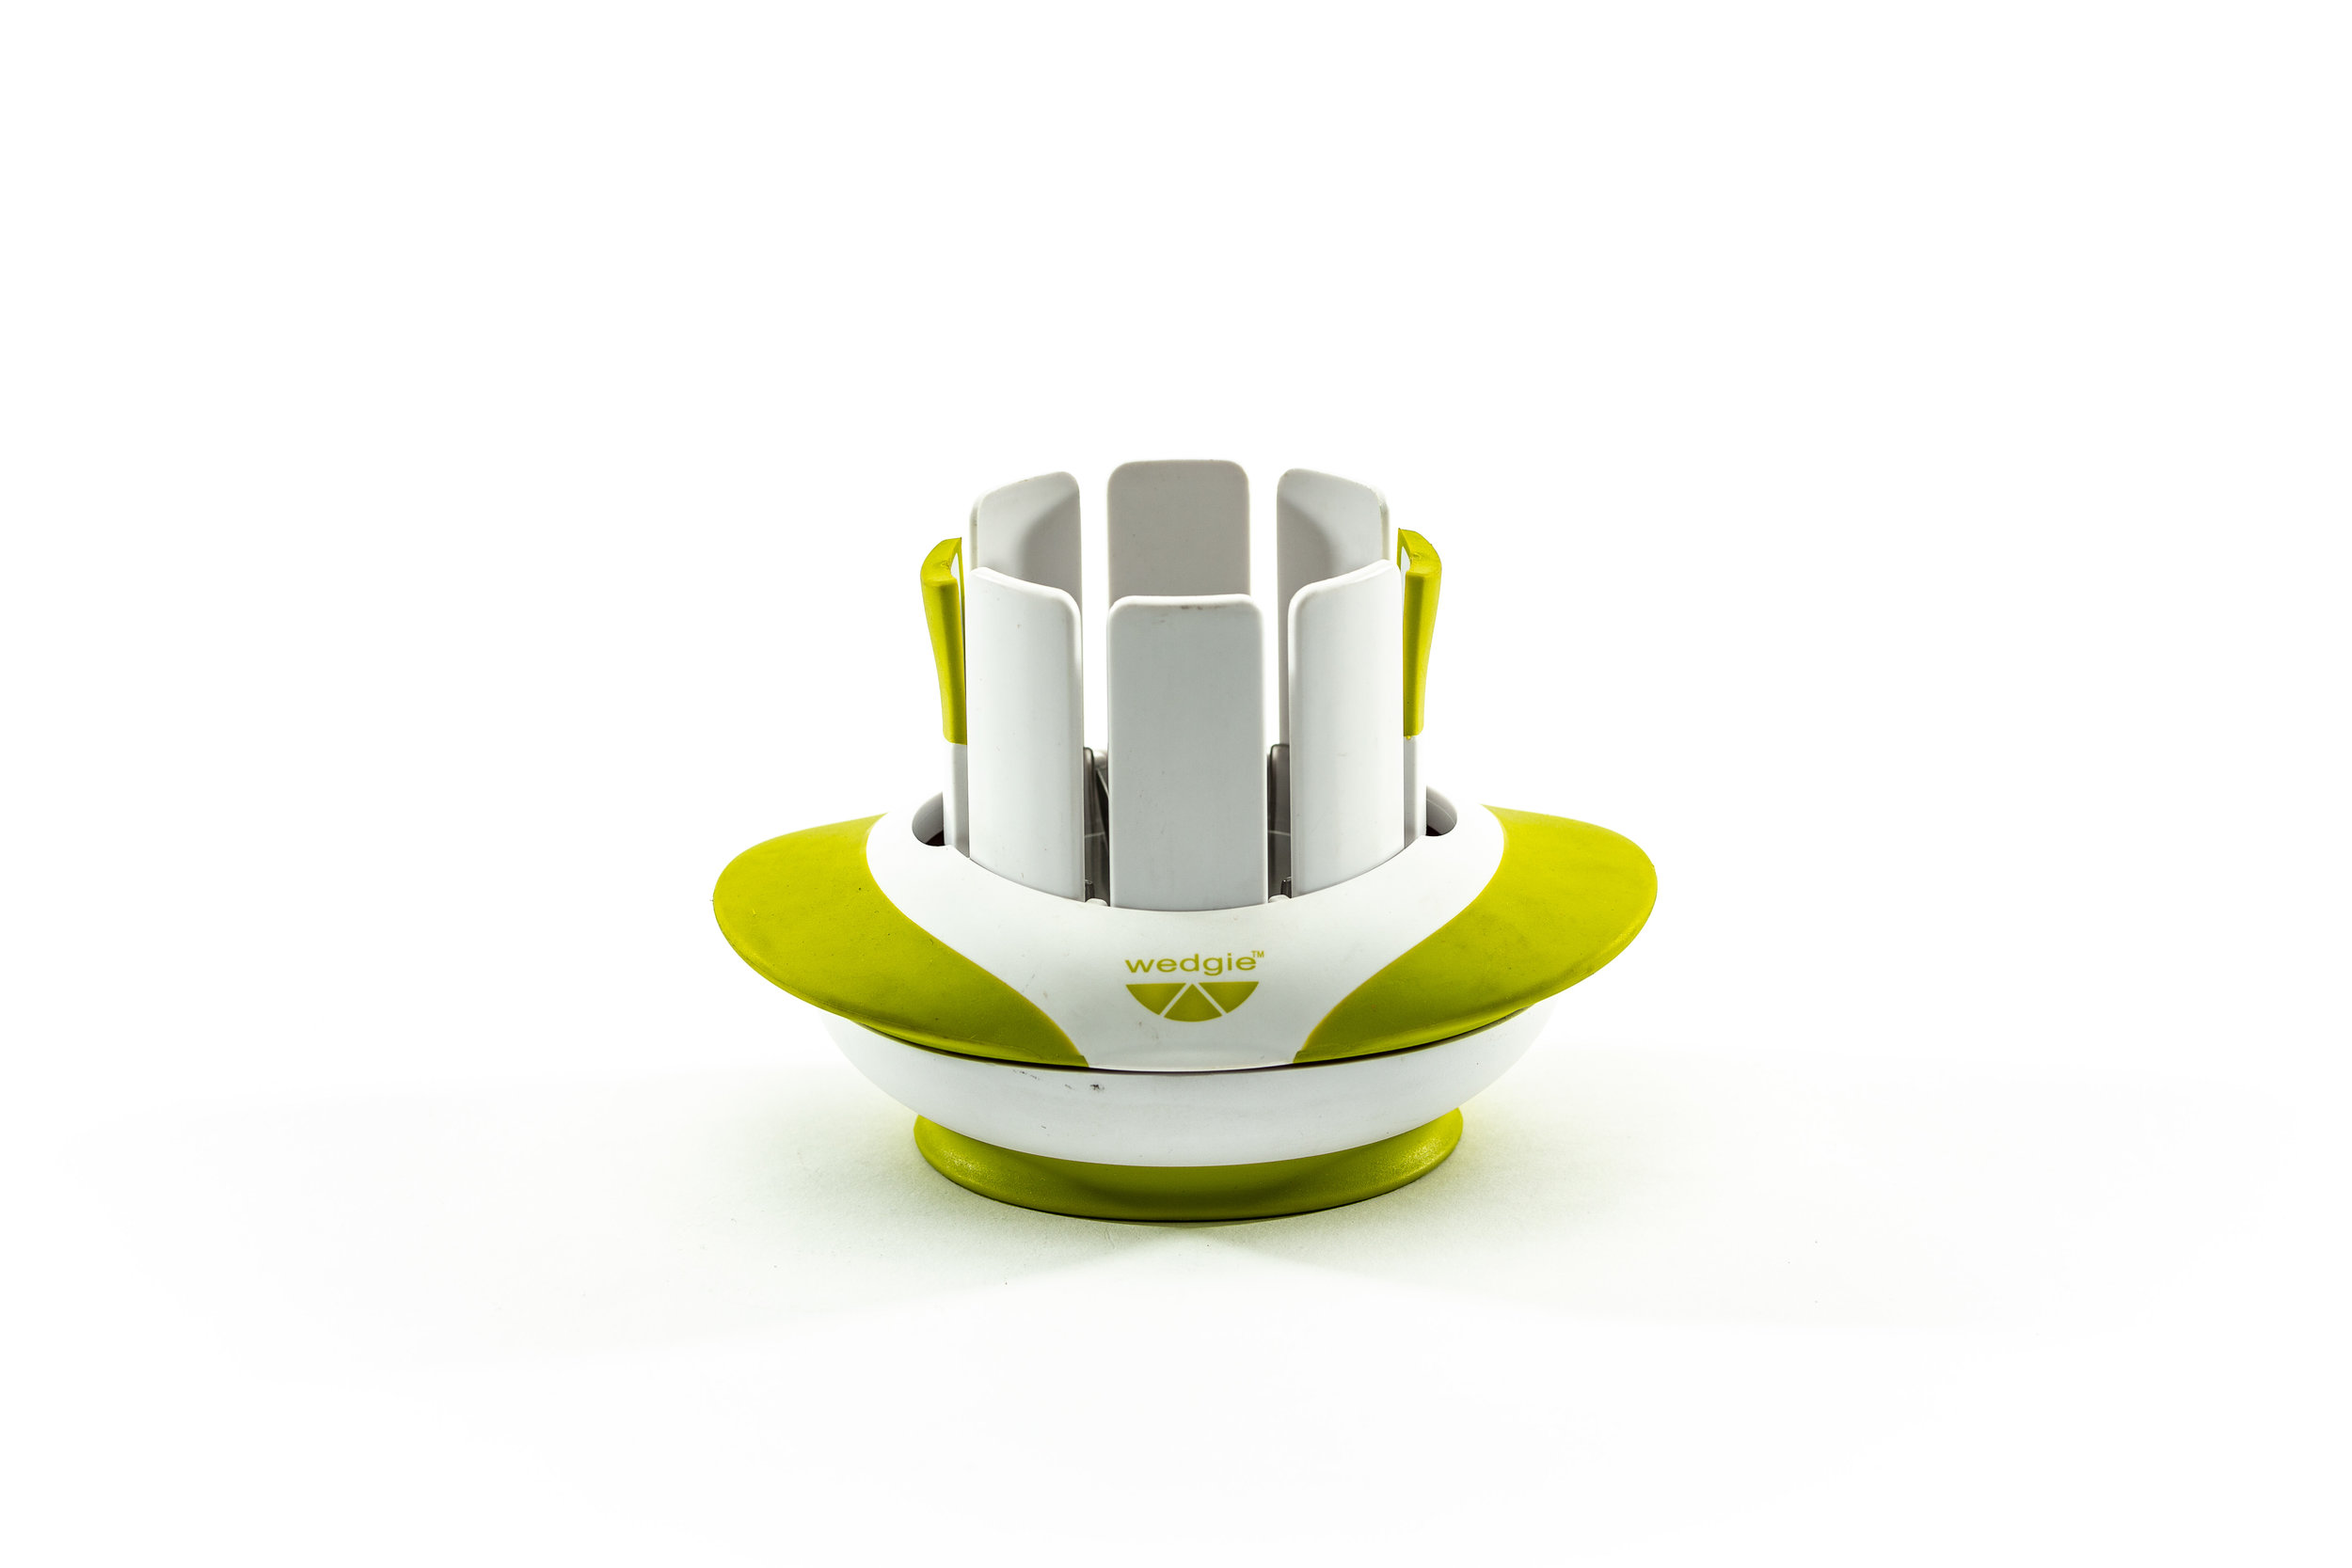 A Trident_KitchenProducts_0006.jpg